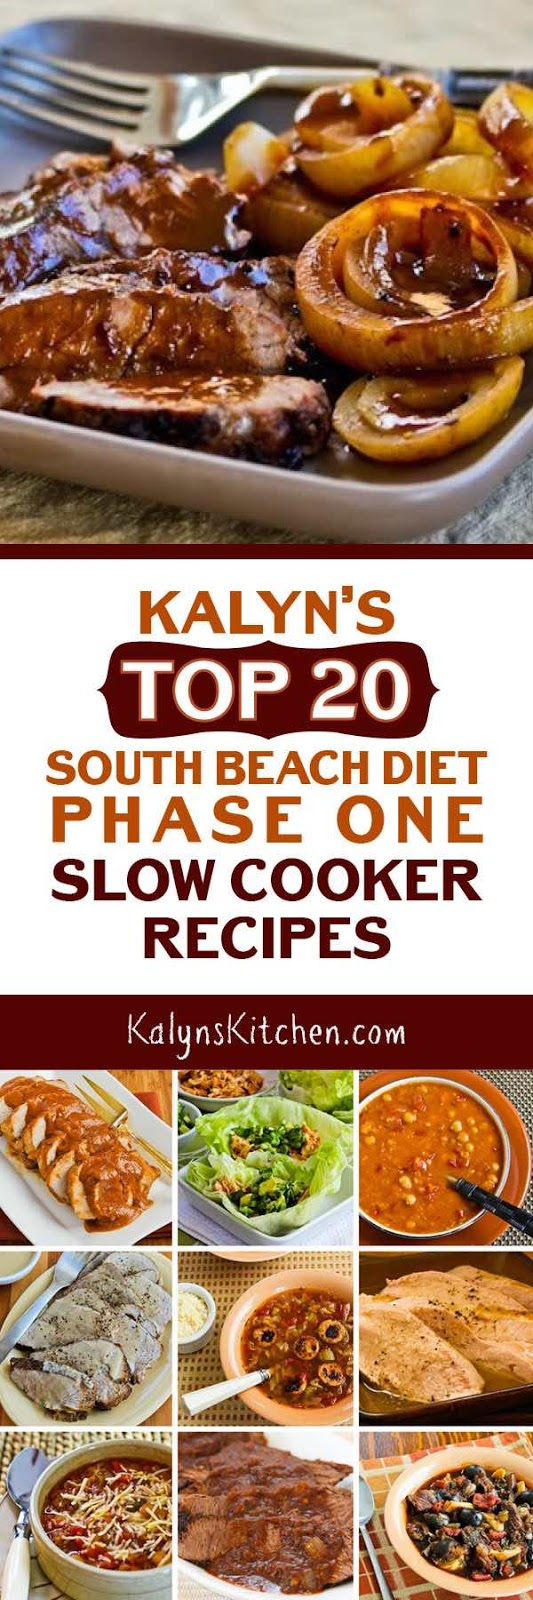 Discussion on this topic: South Beach Diet Recipes, south-beach-diet-recipes/